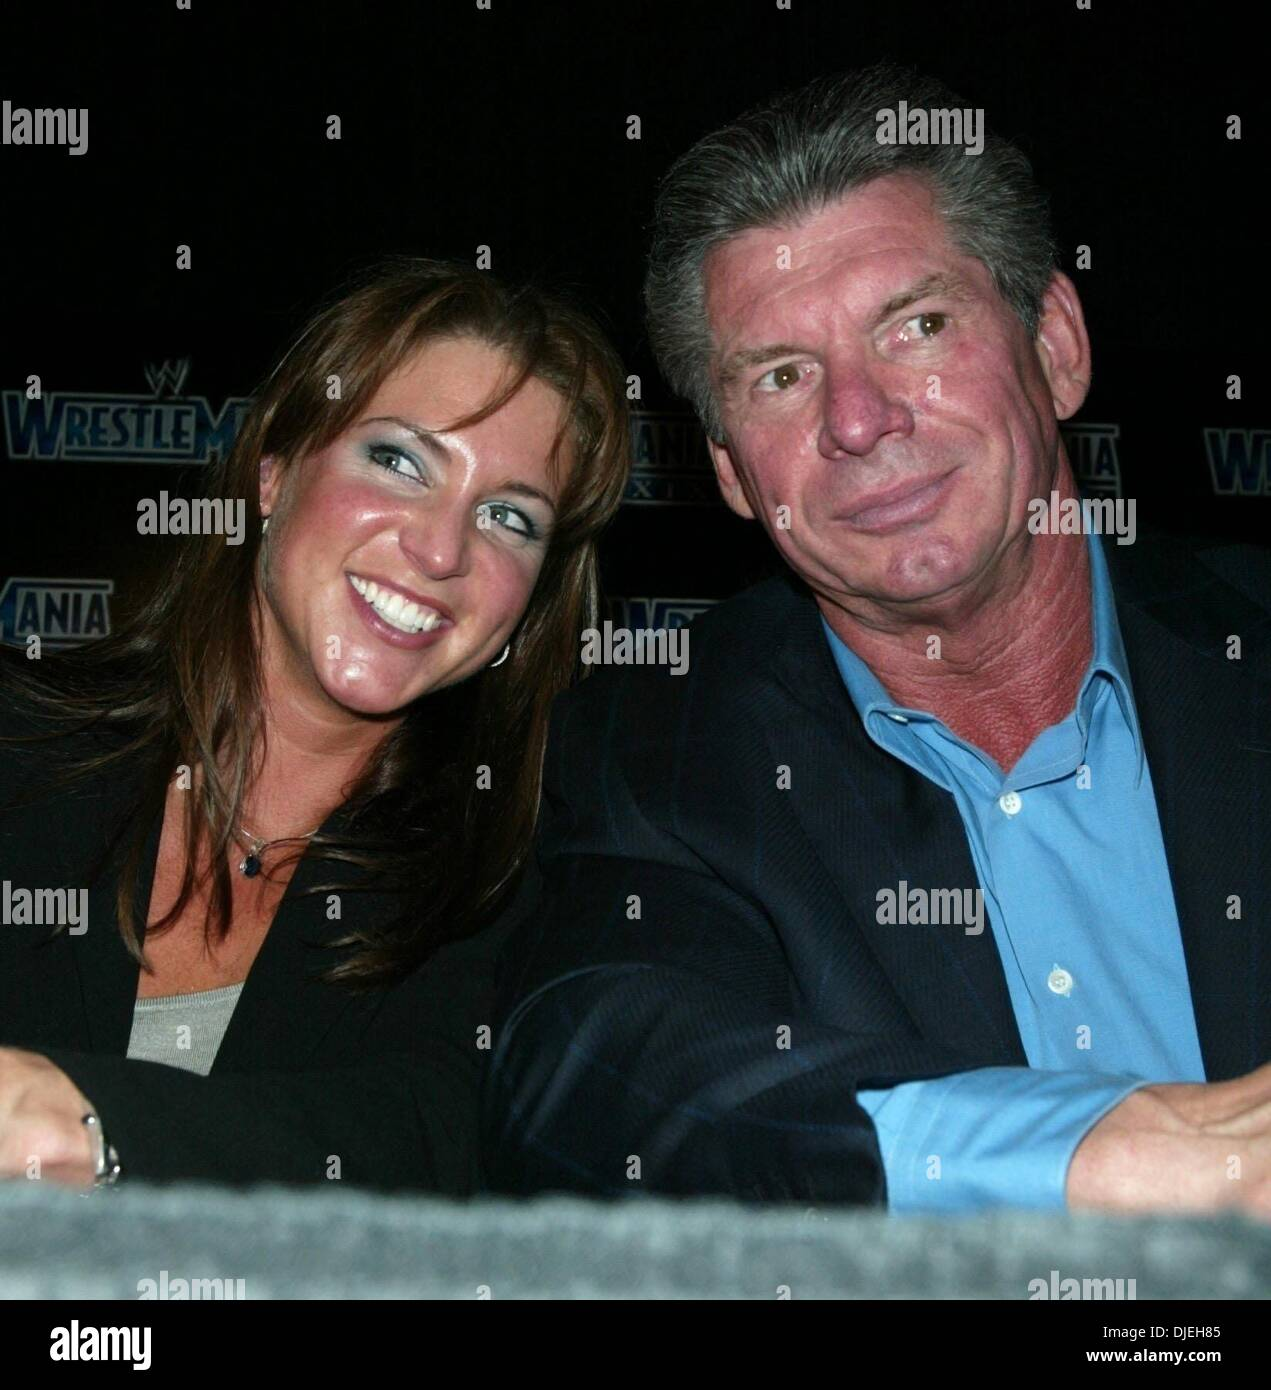 Mar 18, 2003 - New York, New York, USA - STEPHANIE MCMAHON and her father WWE Chairman VINCE MCMAHON at the press - Stock Image